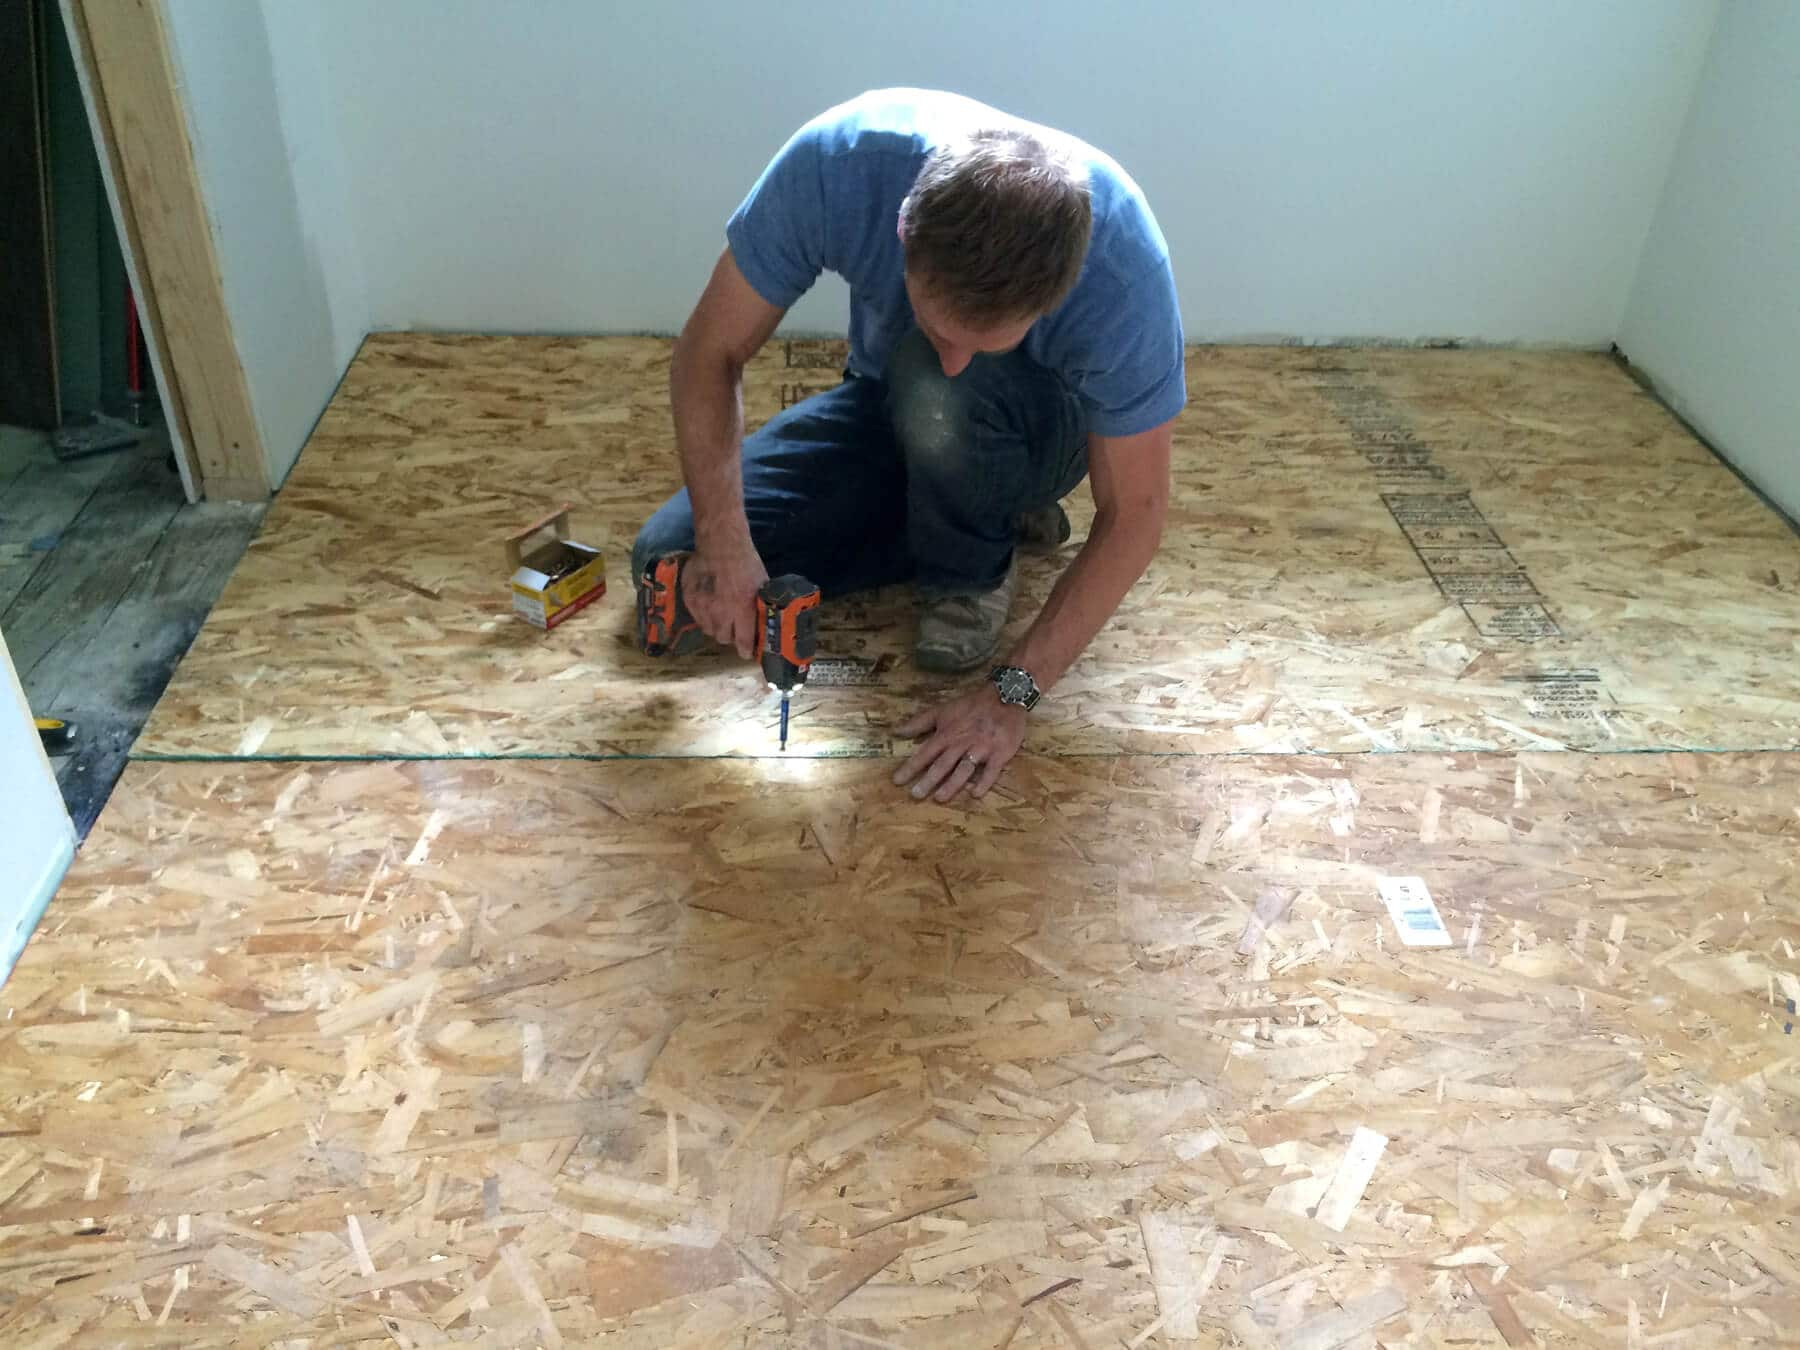 25 Fabulous Hardwood Flooring Nailer Reviews 2021 free download hardwood flooring nailer reviews of the micro dwelling project part 5 flooring the daring gourmet within next it was time to lay down the hardwood flooring